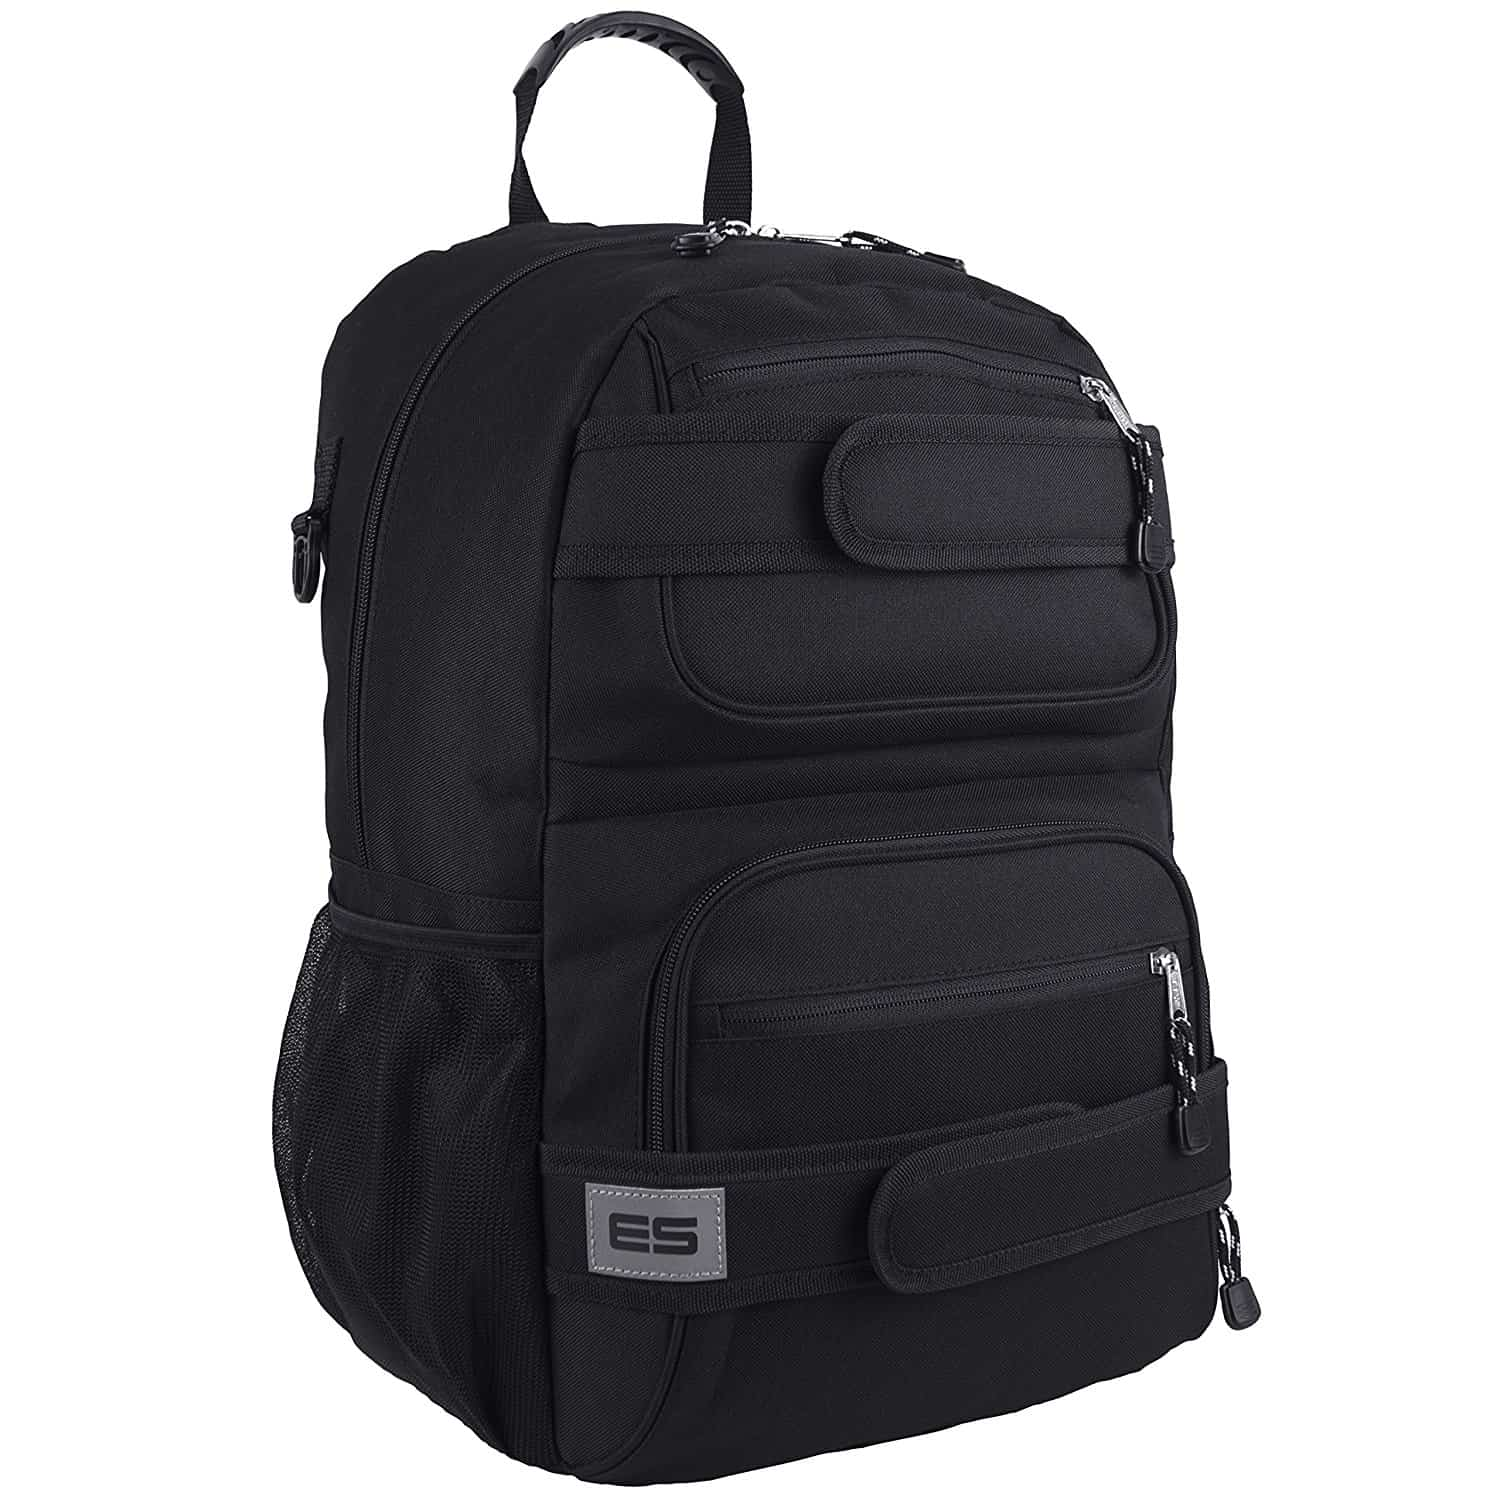 10 Best Skateboard Backpack Reviews And Buying Guide